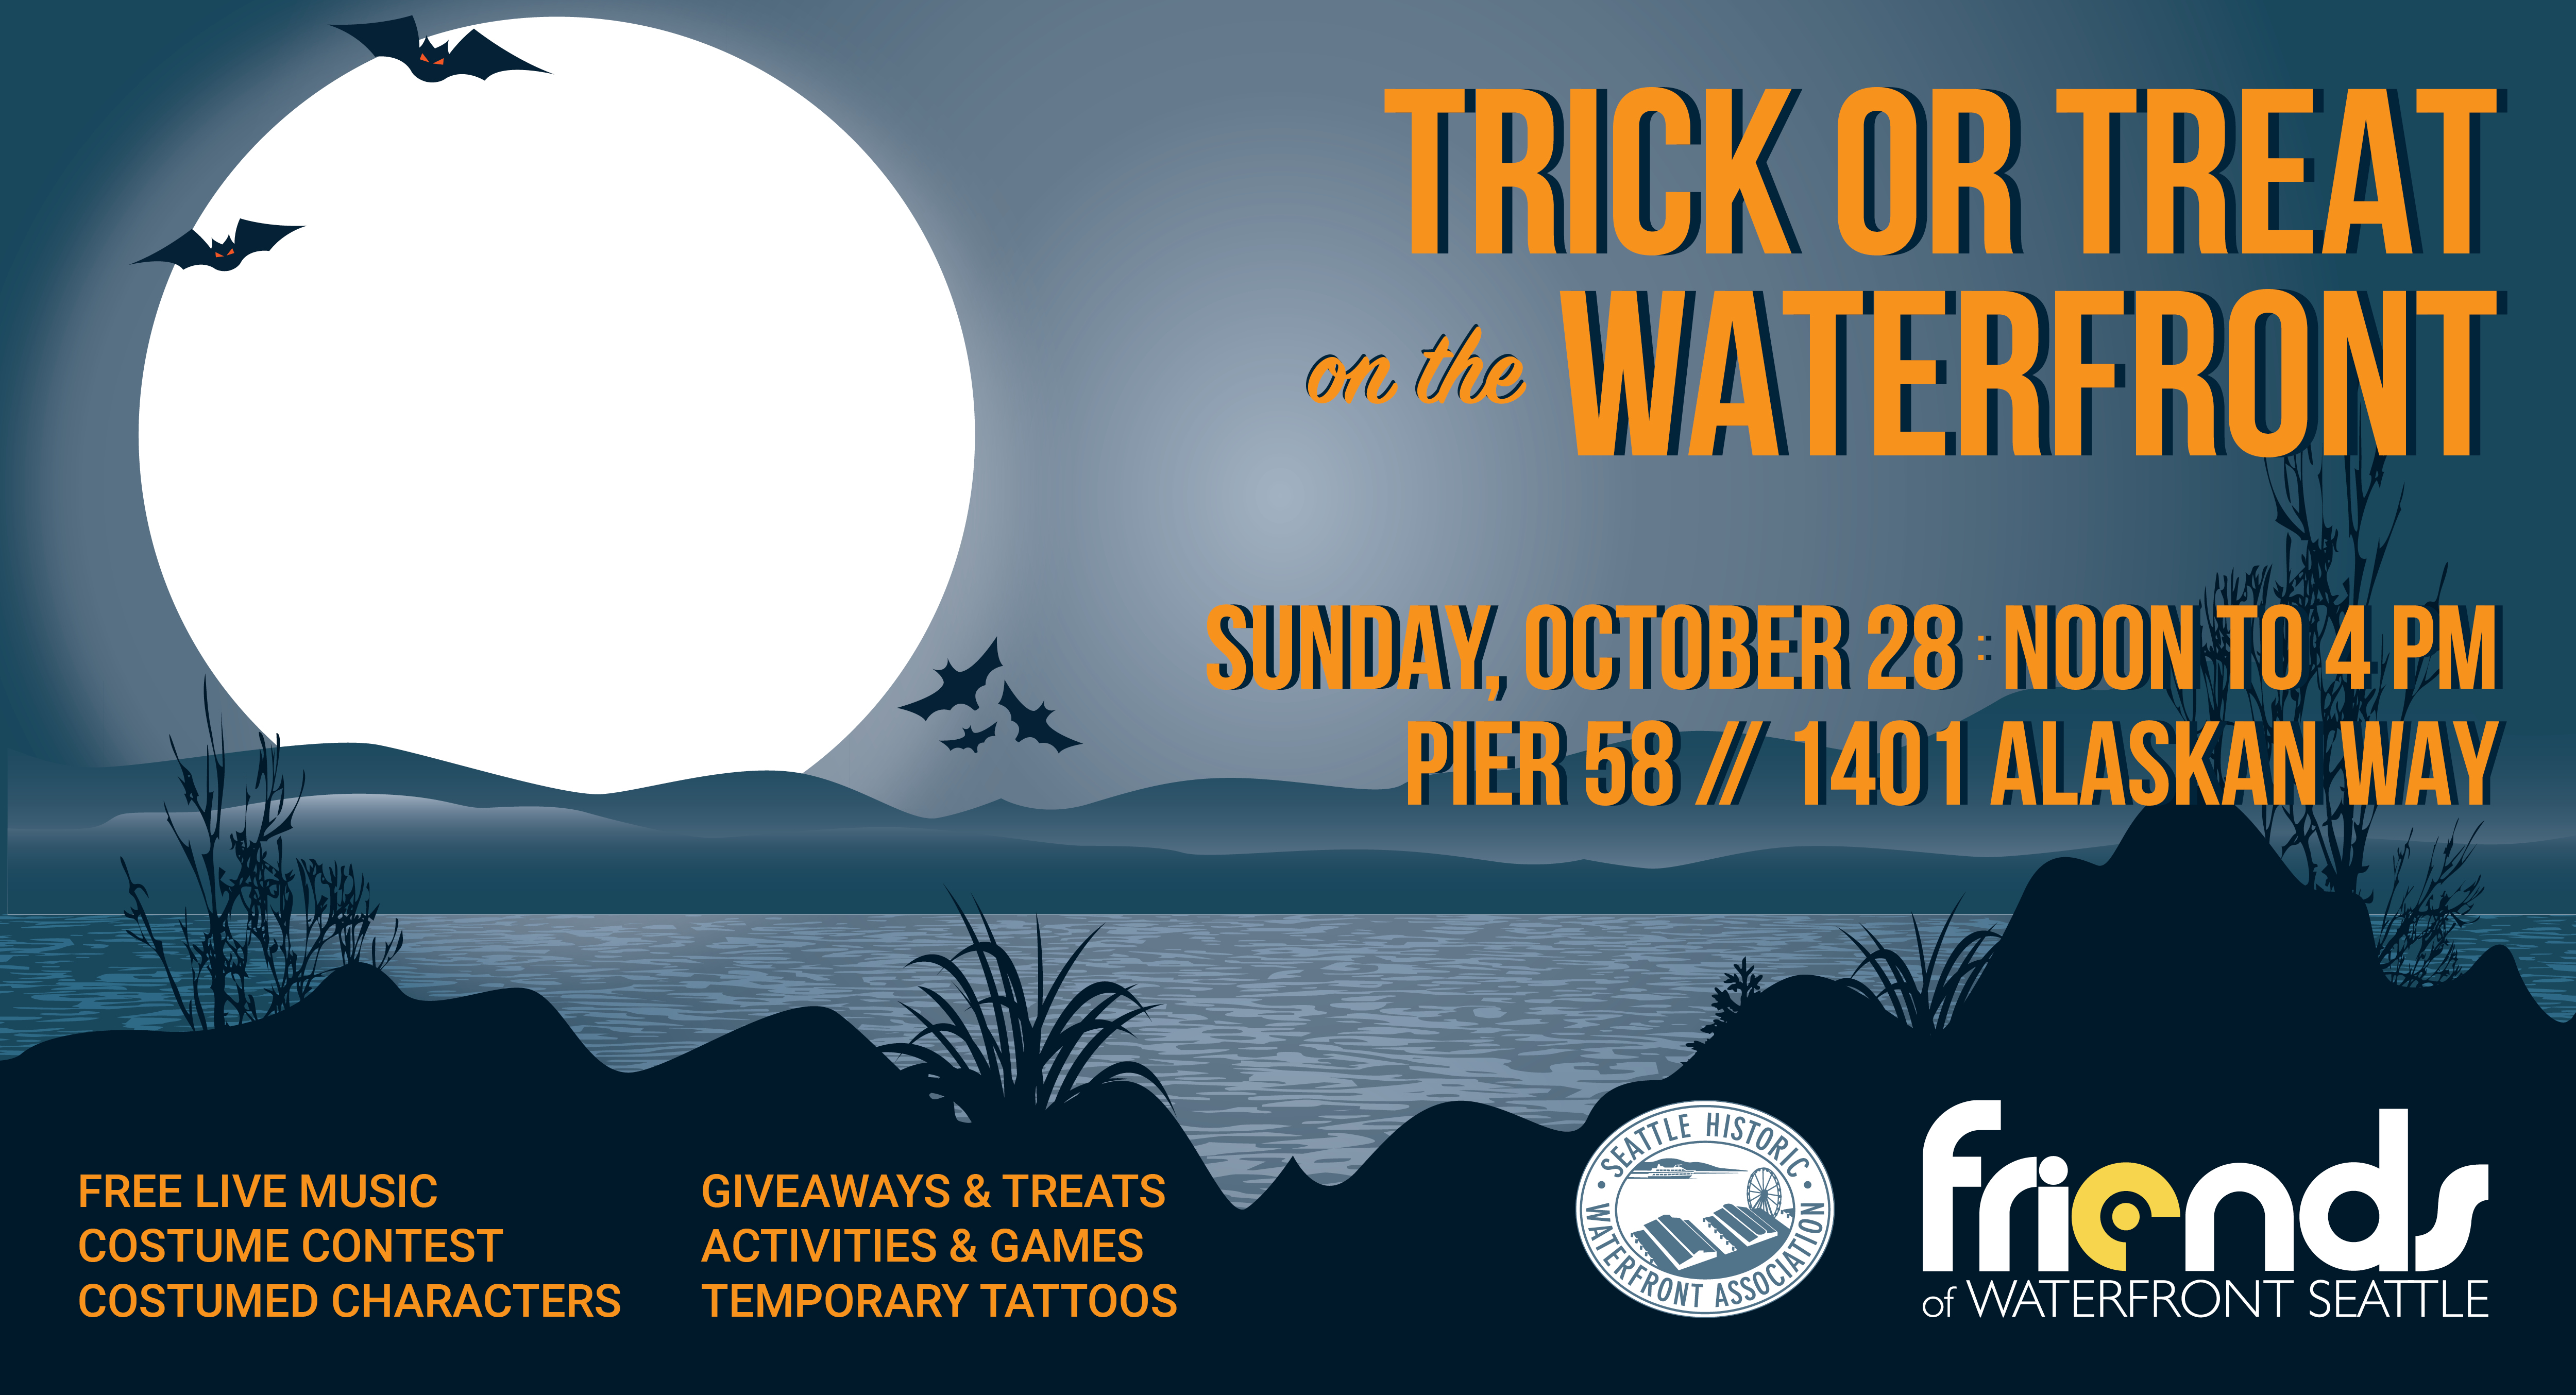 trick or treat on the waterfront - friends of waterfront seattle